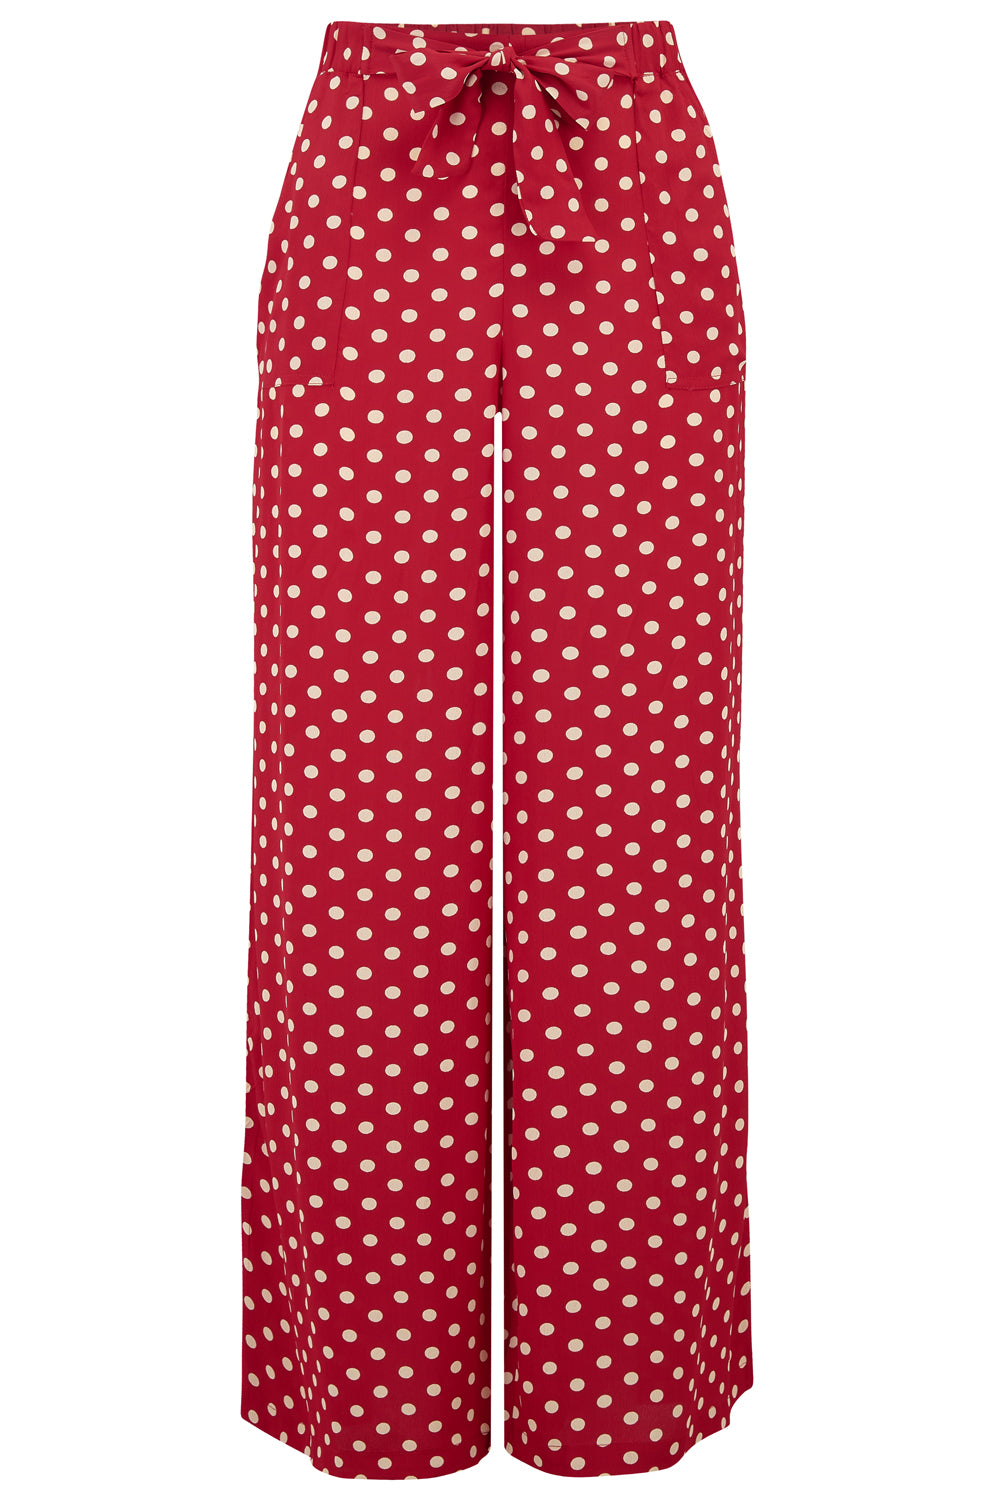 "The Seamstress Of Bloomsbury ""Winnie"" Loose Fit Trousers in Red Polka Dot, Classic & Authentic 1940s Vintage Style"